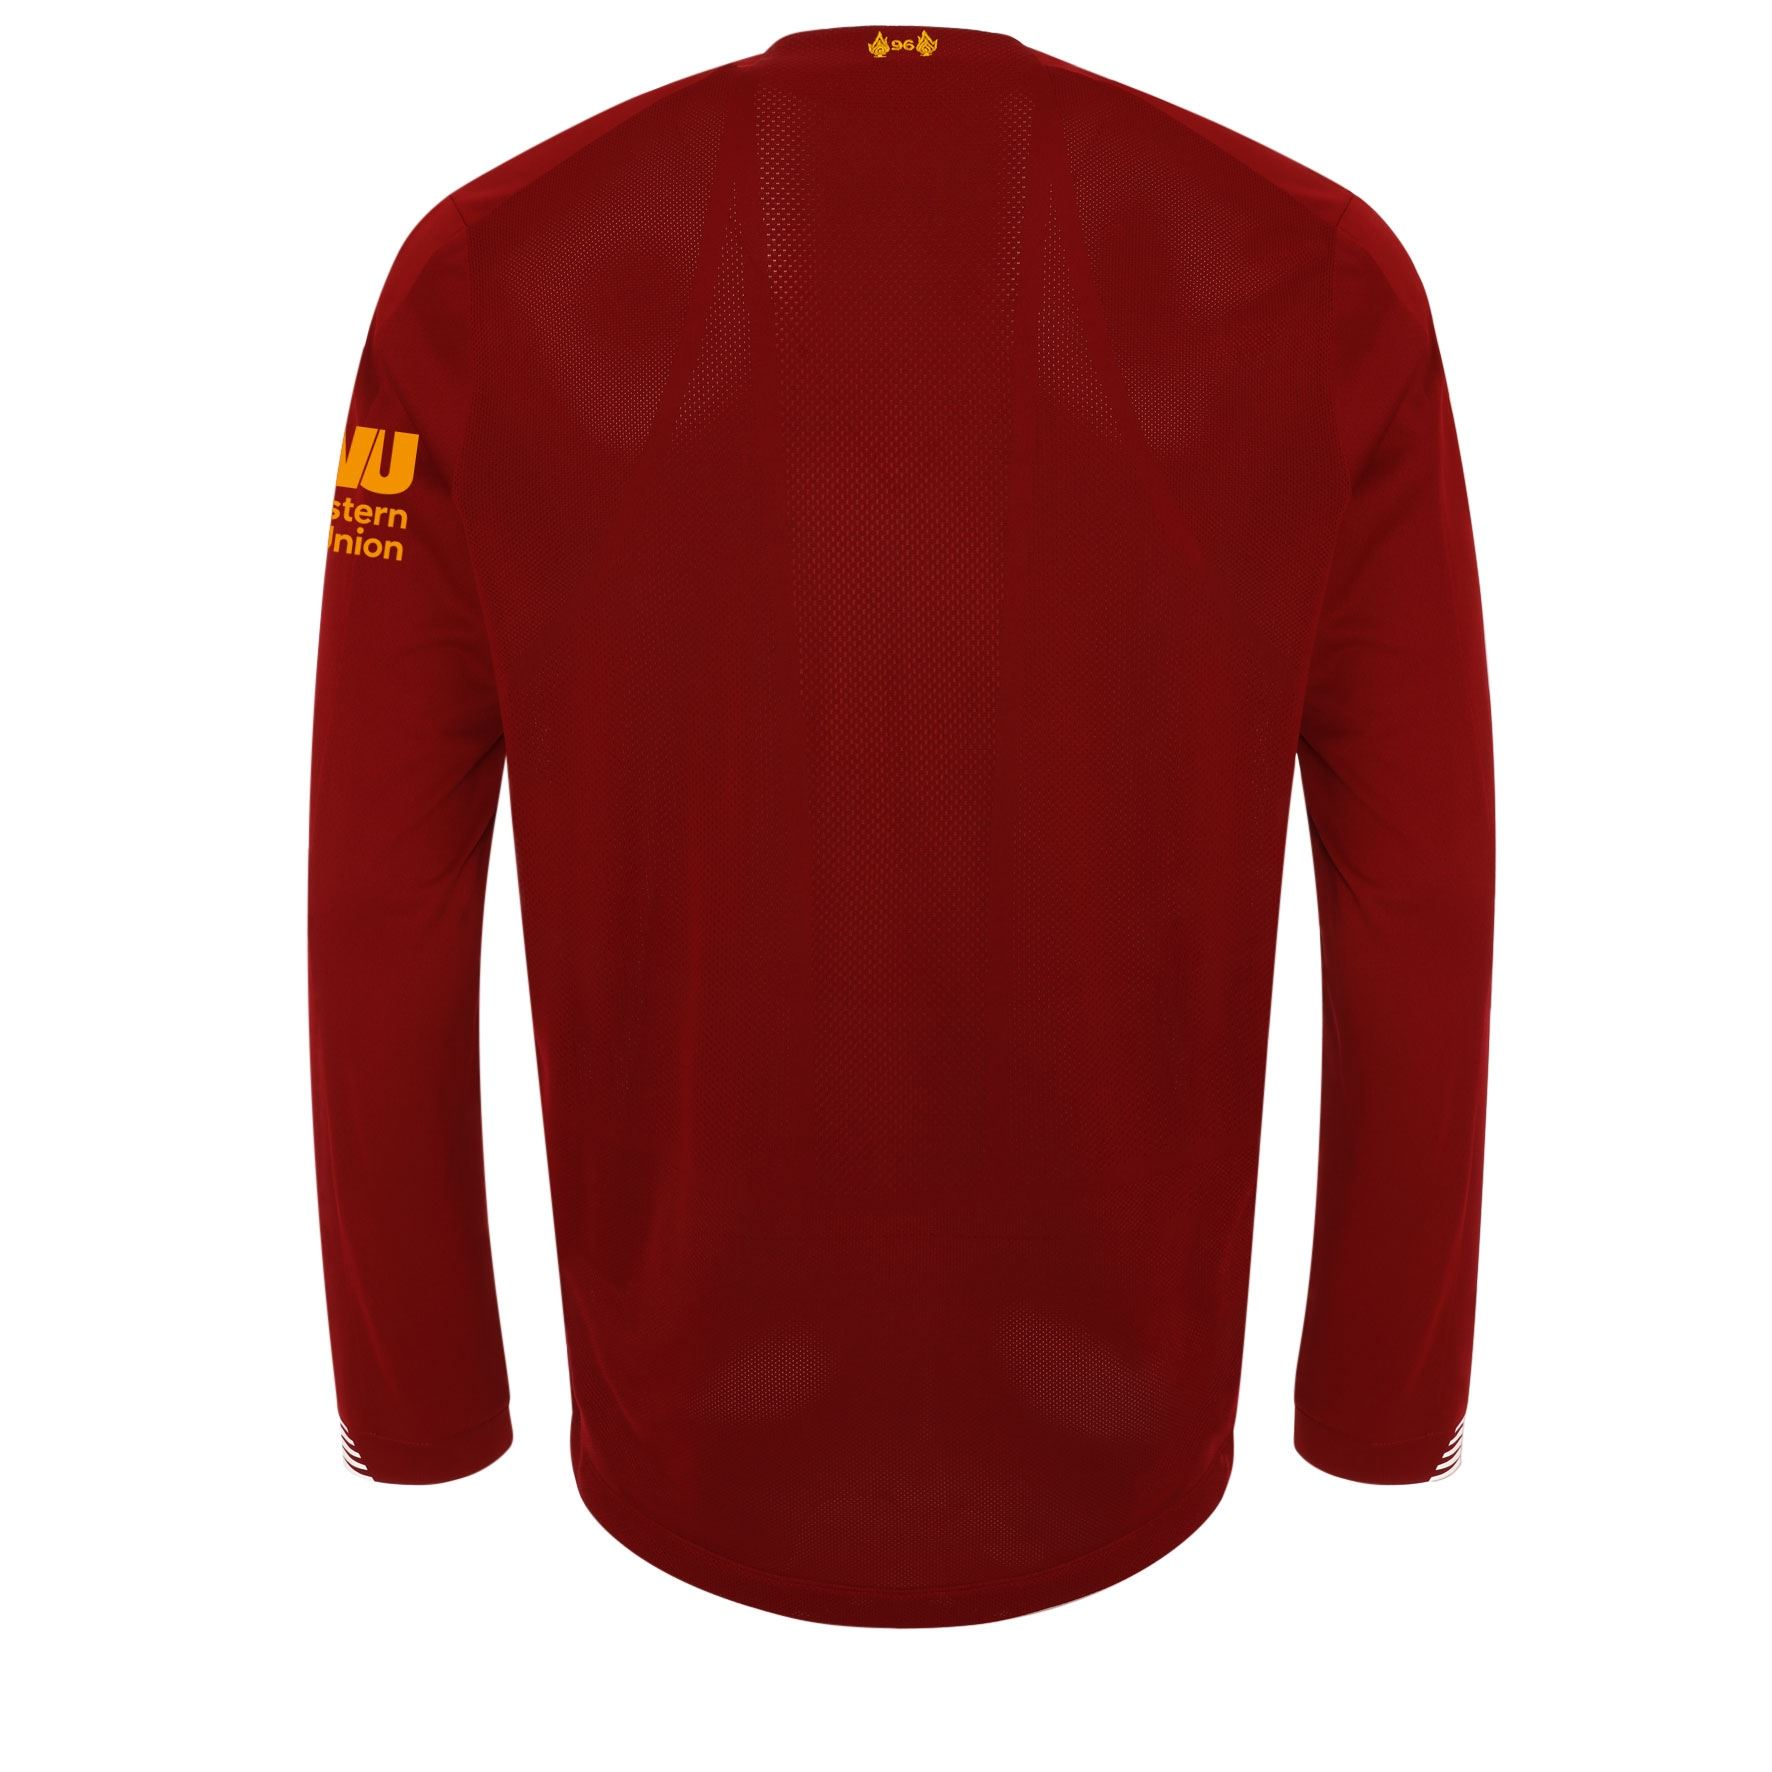 cheaper 479e2 cff85 Details about Liverpool FC Home Kit Red Long Sleeve Mens Soccer Shirt  2019/2020 LFC Official